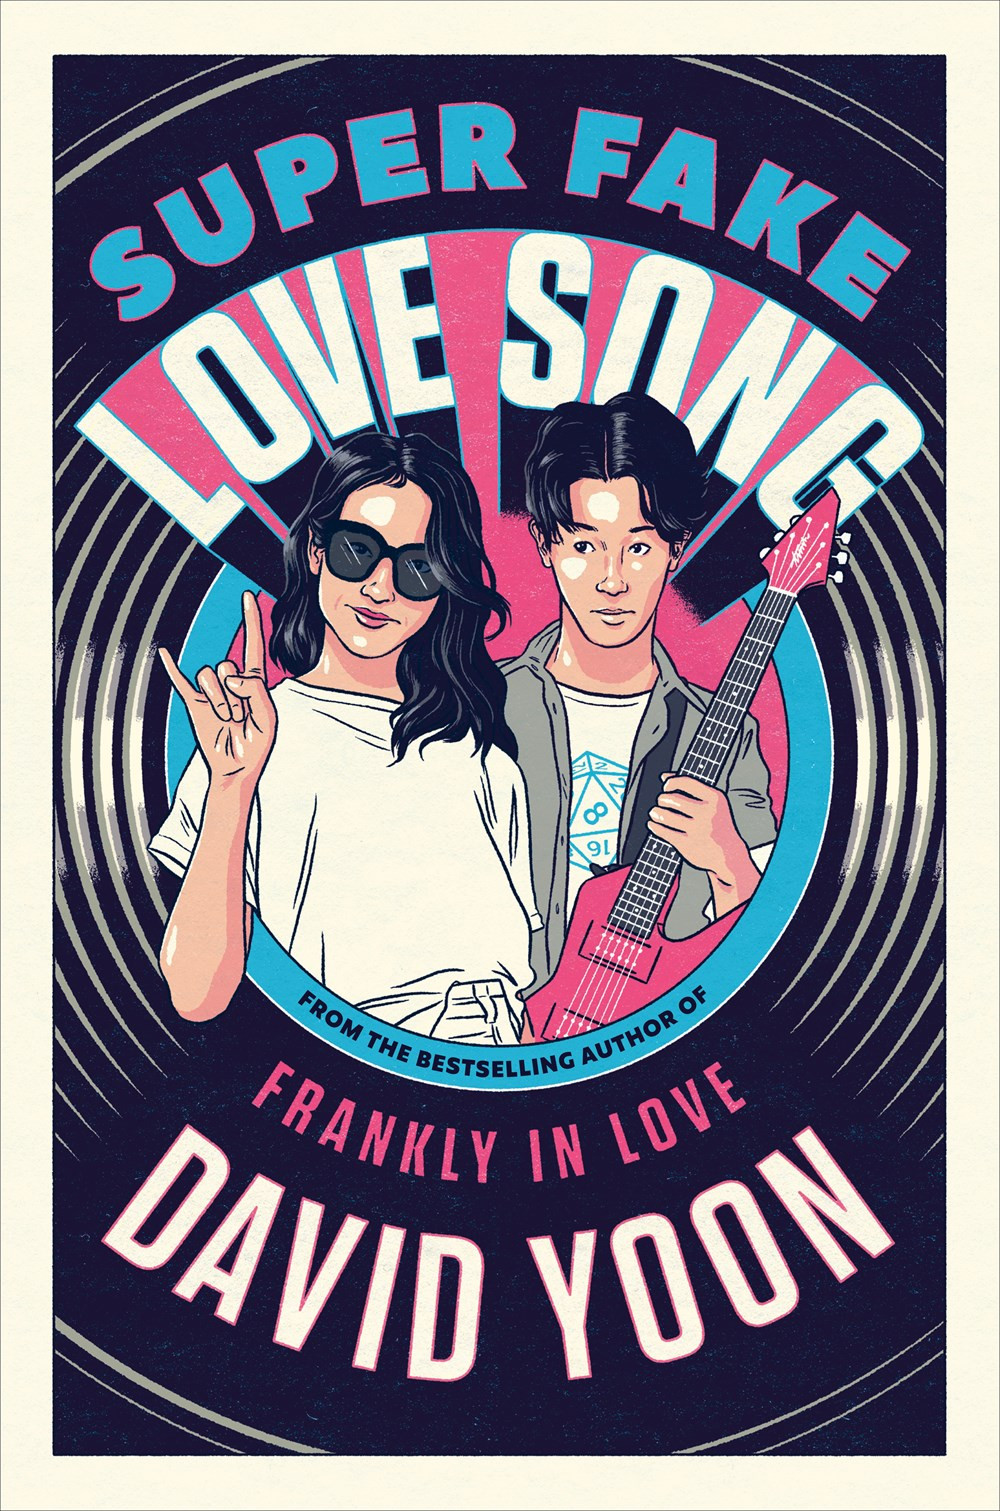 book cover of David Yoon's Super Fake Love Song